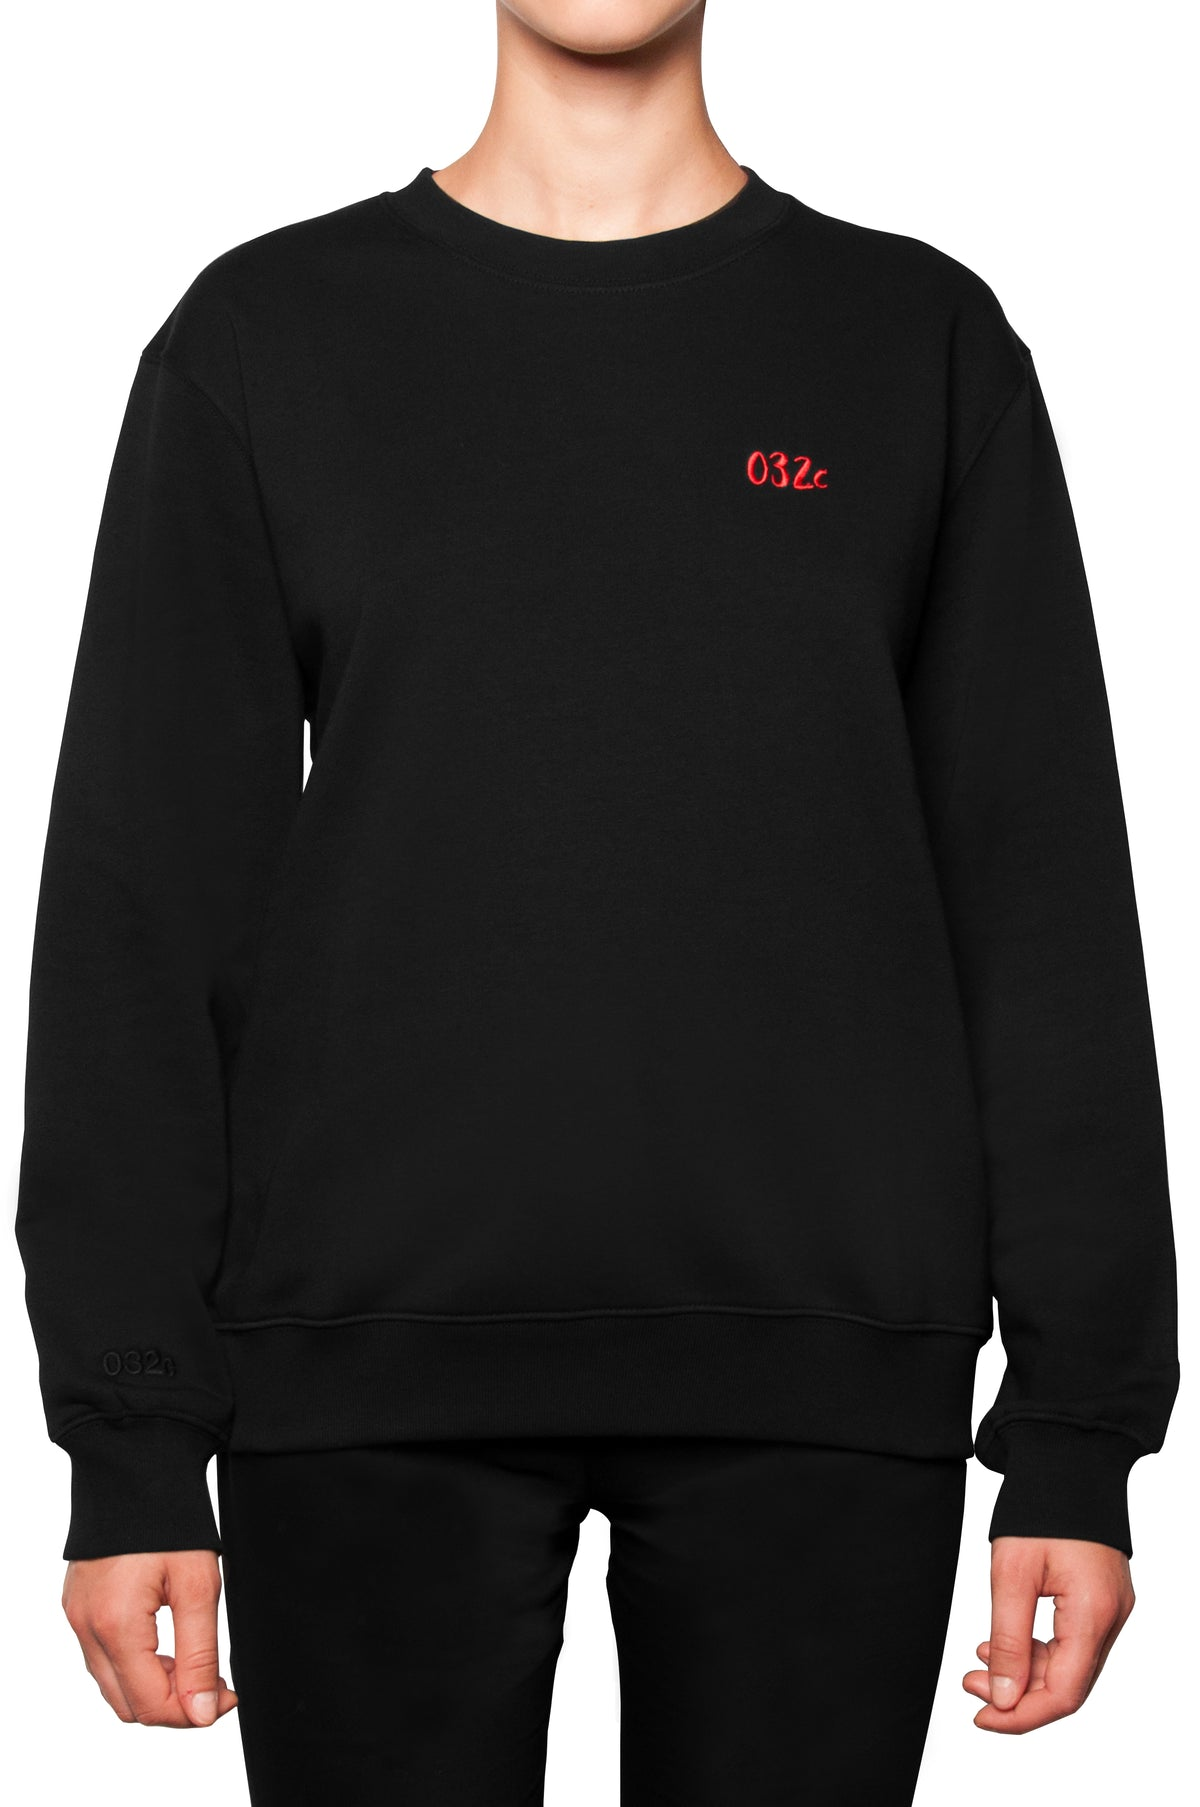 032c Resist Sweatshirt - 032c